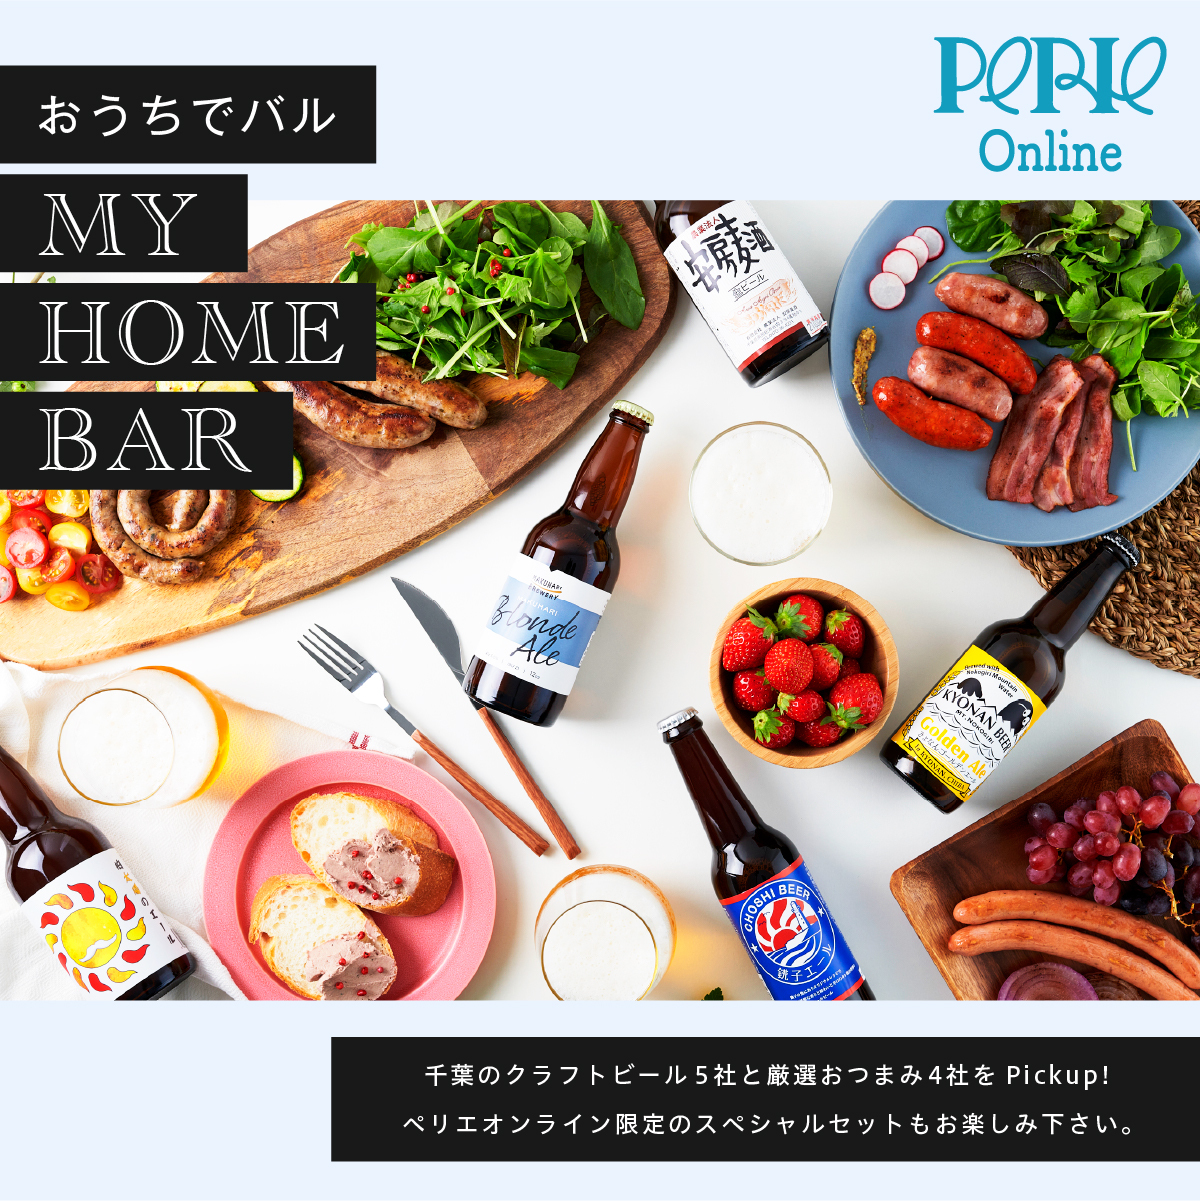 https://online.perie.co.jp/pages/homebar